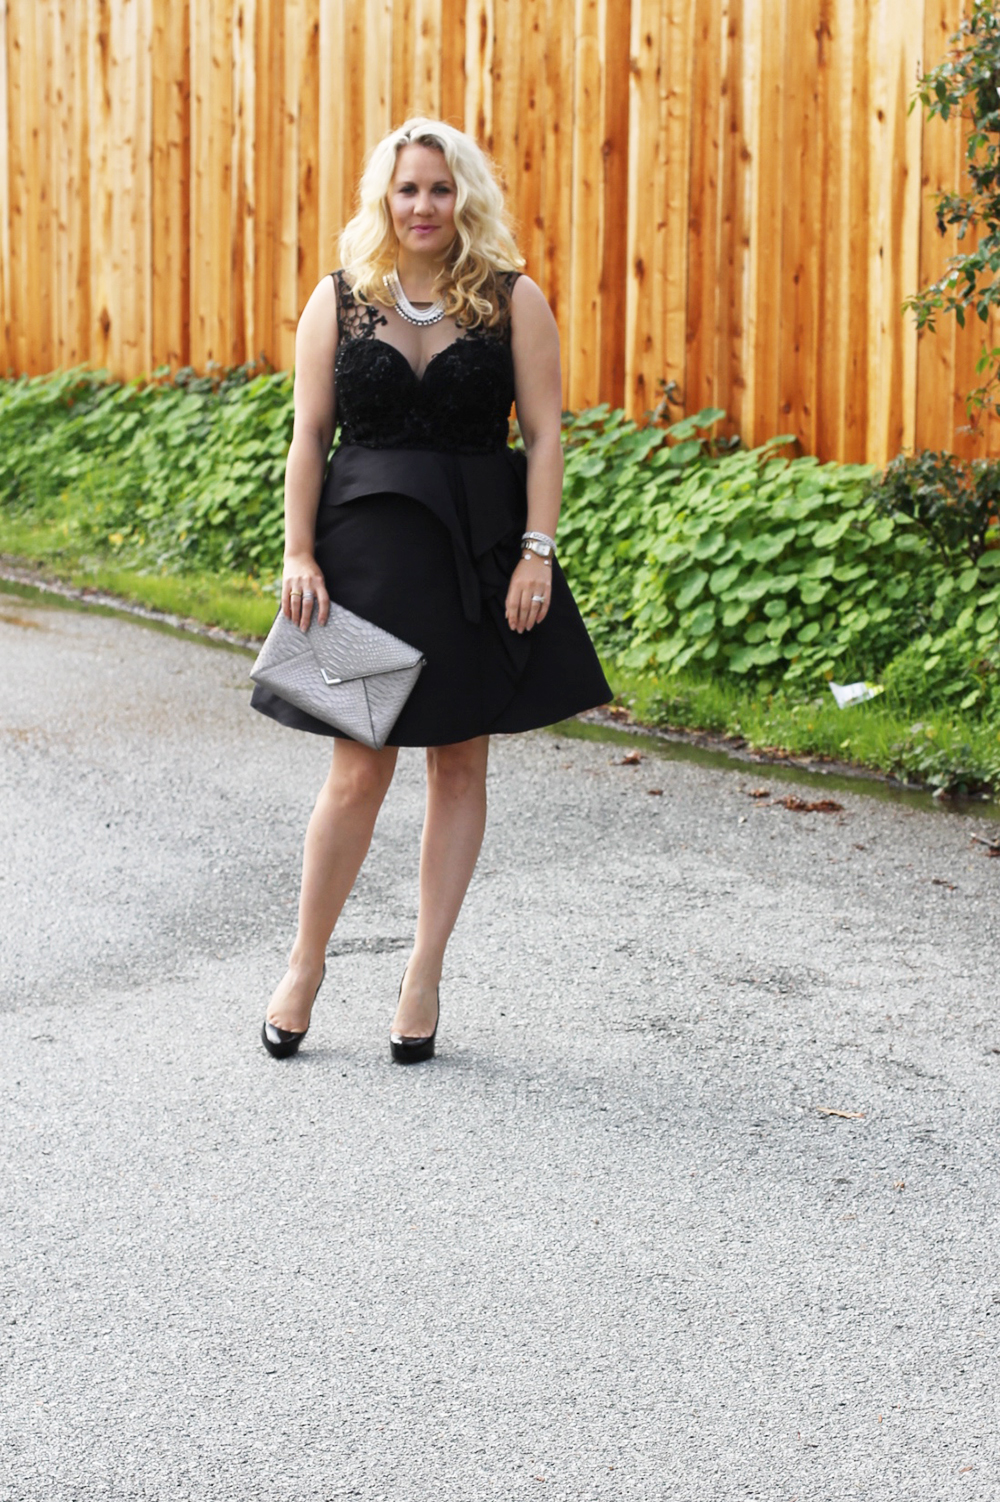 warmest-wishes-this-holiday-season-have-need-want-holiday-style-lbd-outfit-inspiration-6